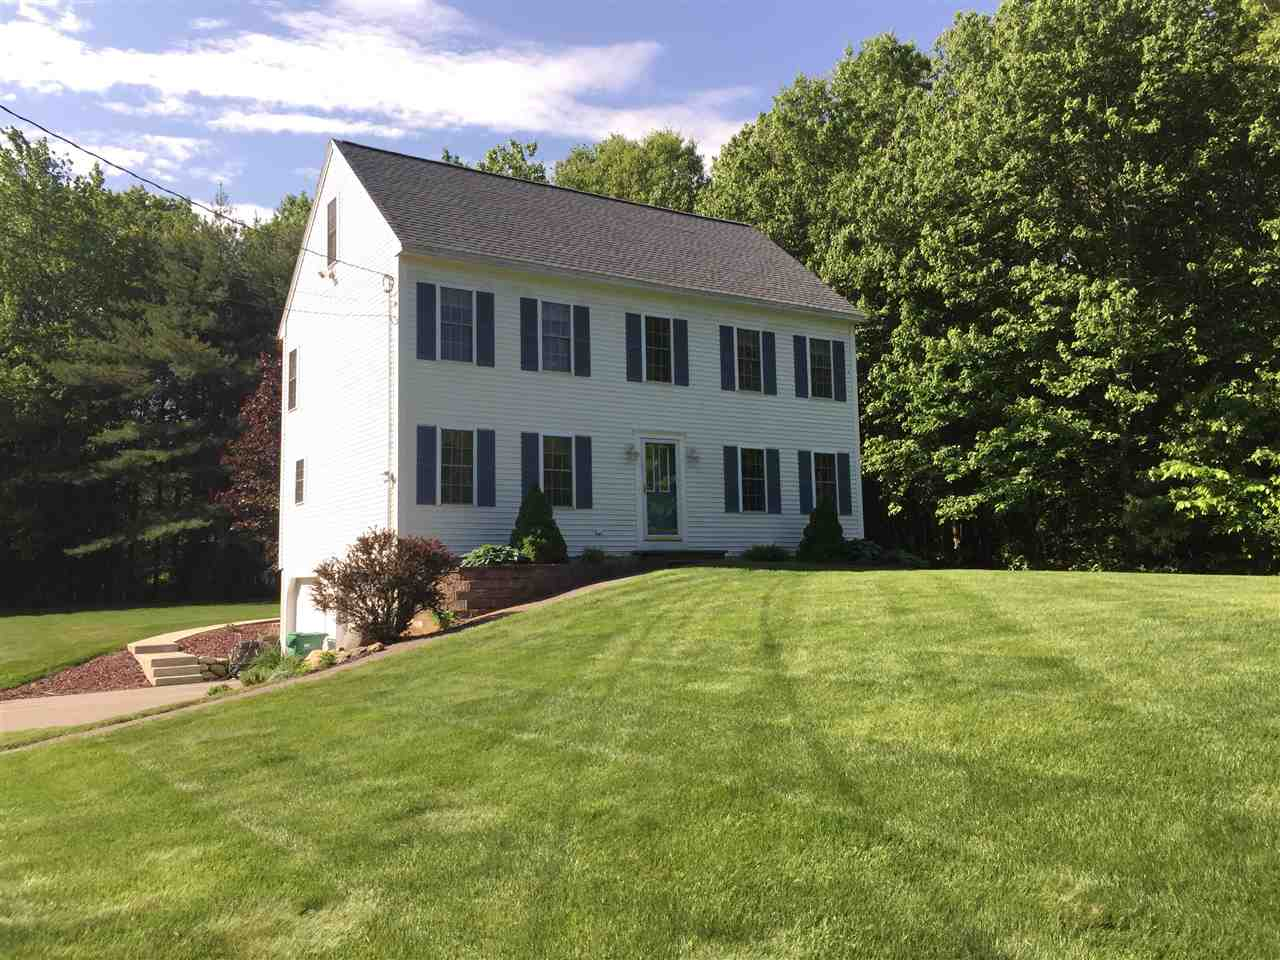 Photo of 22 Victoria Farms Road Fremont NH 03044